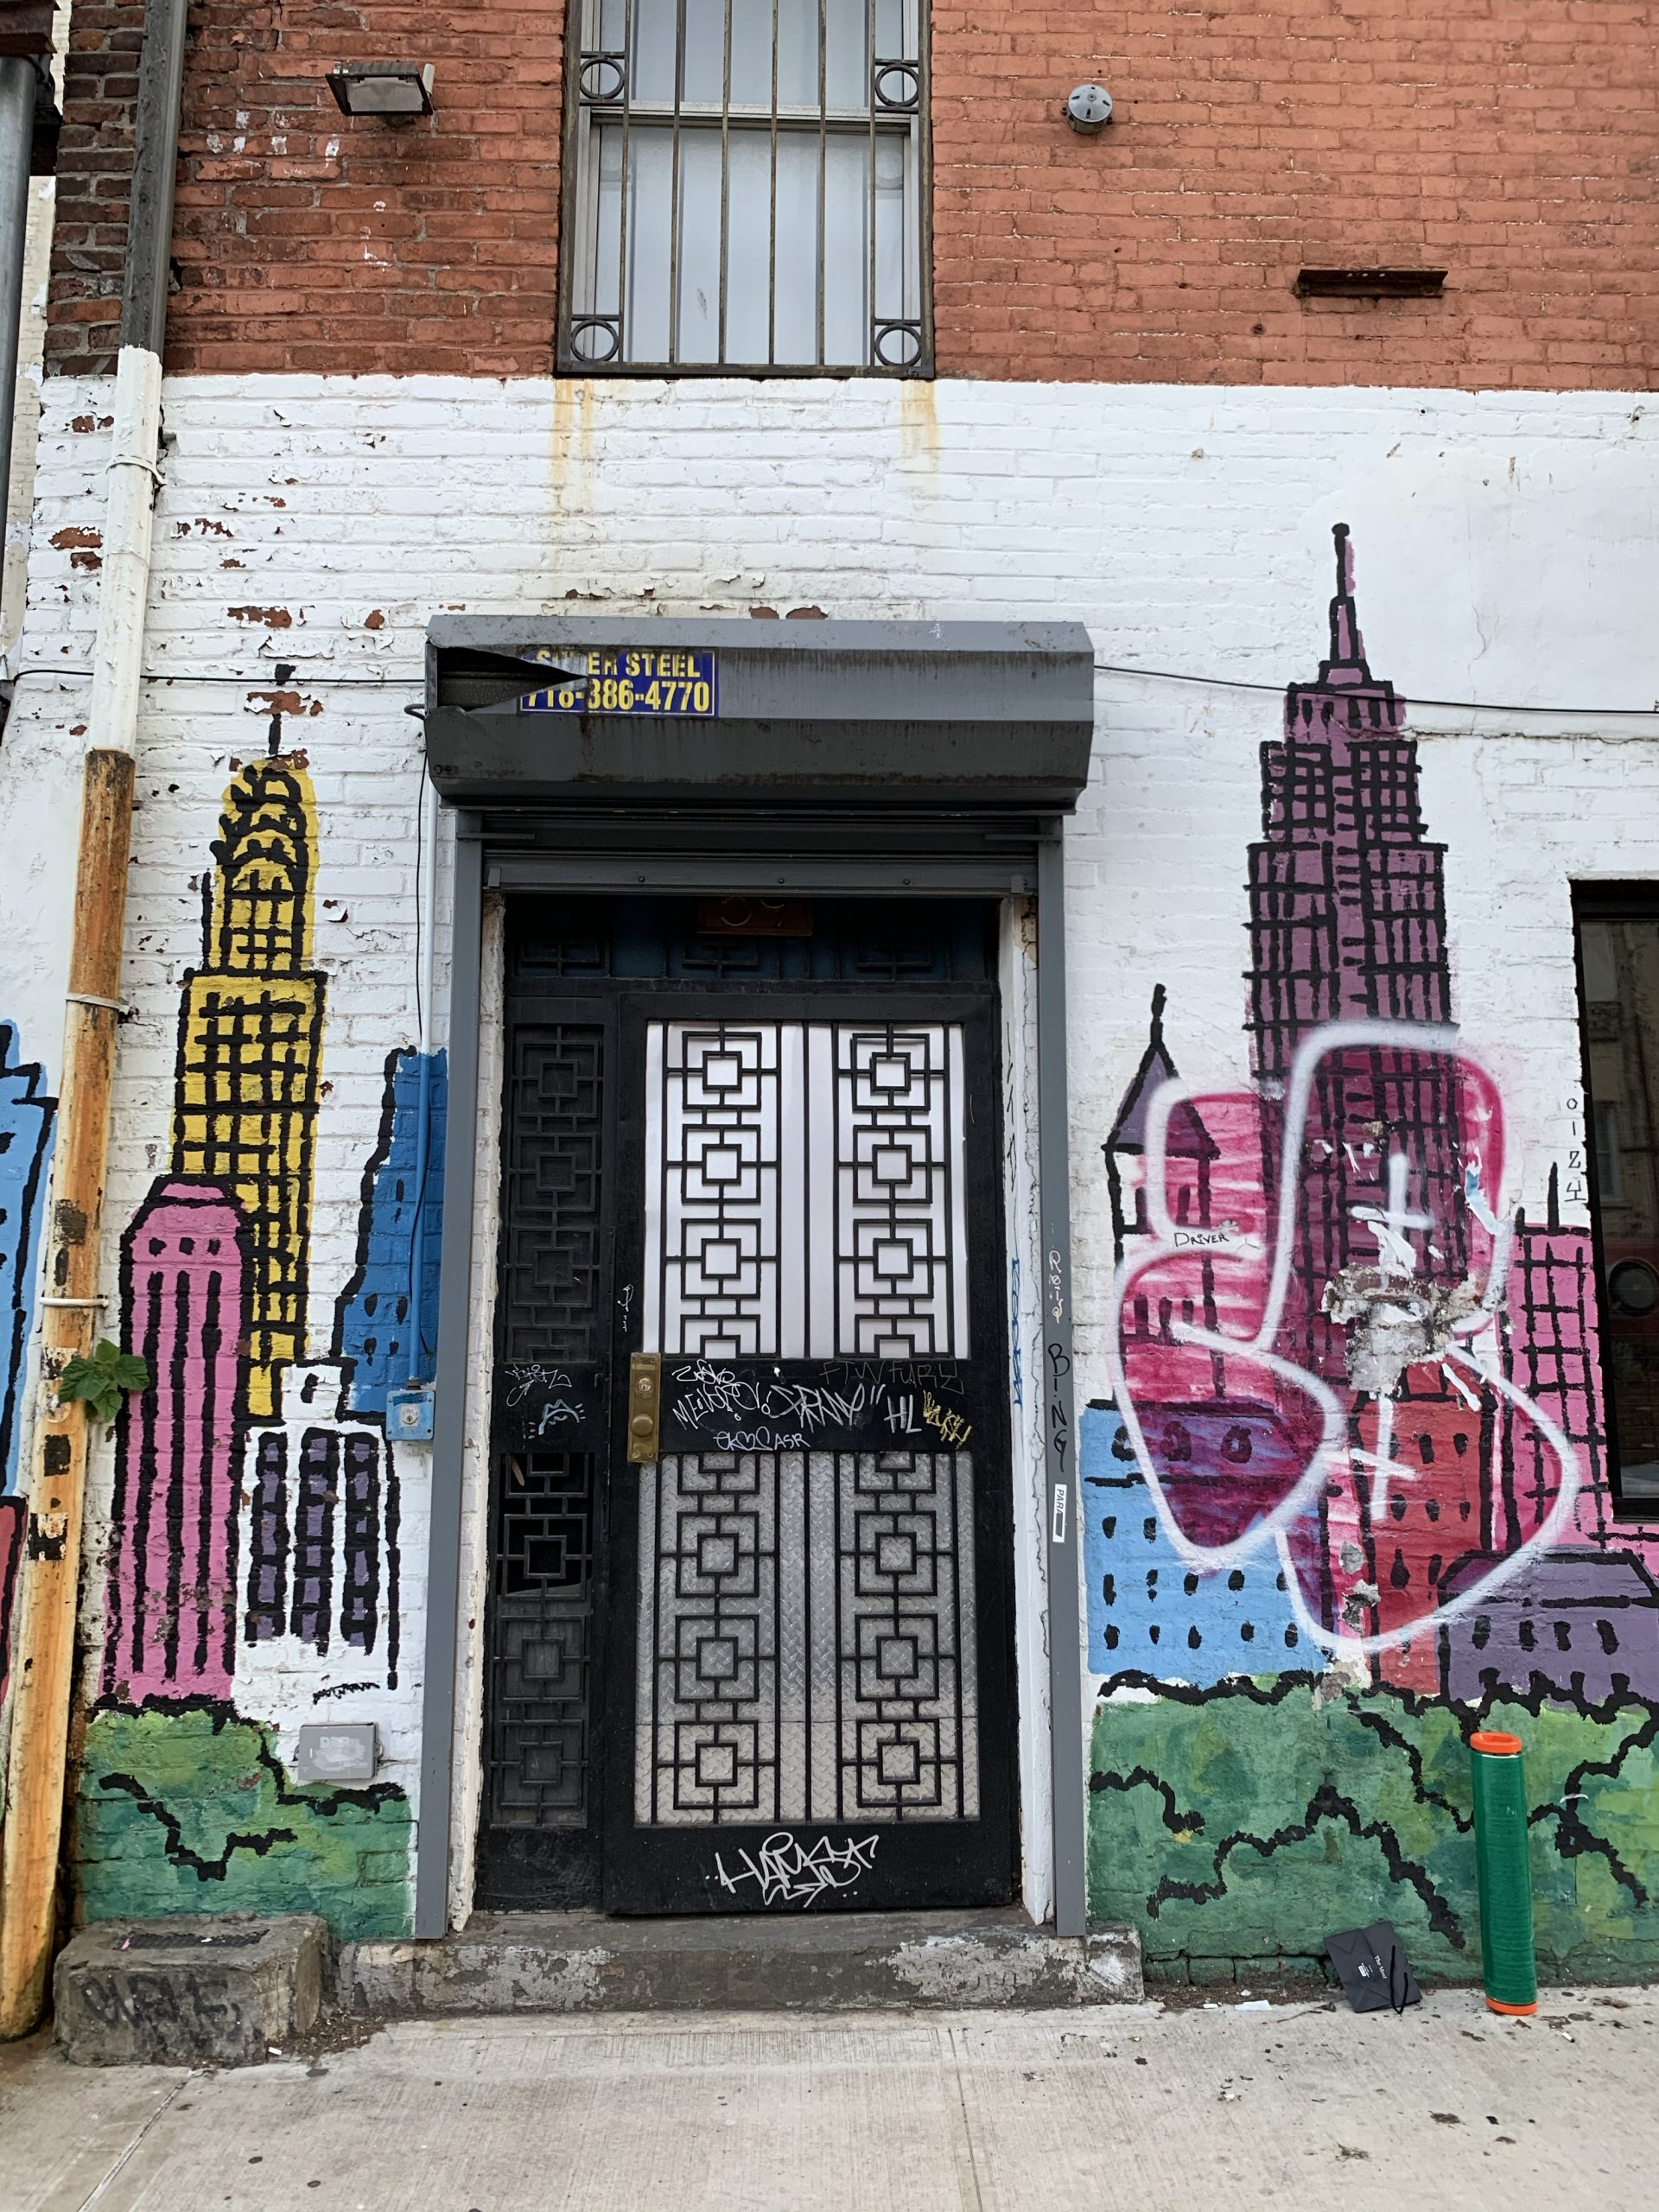 Street art of NYC buildings and a door